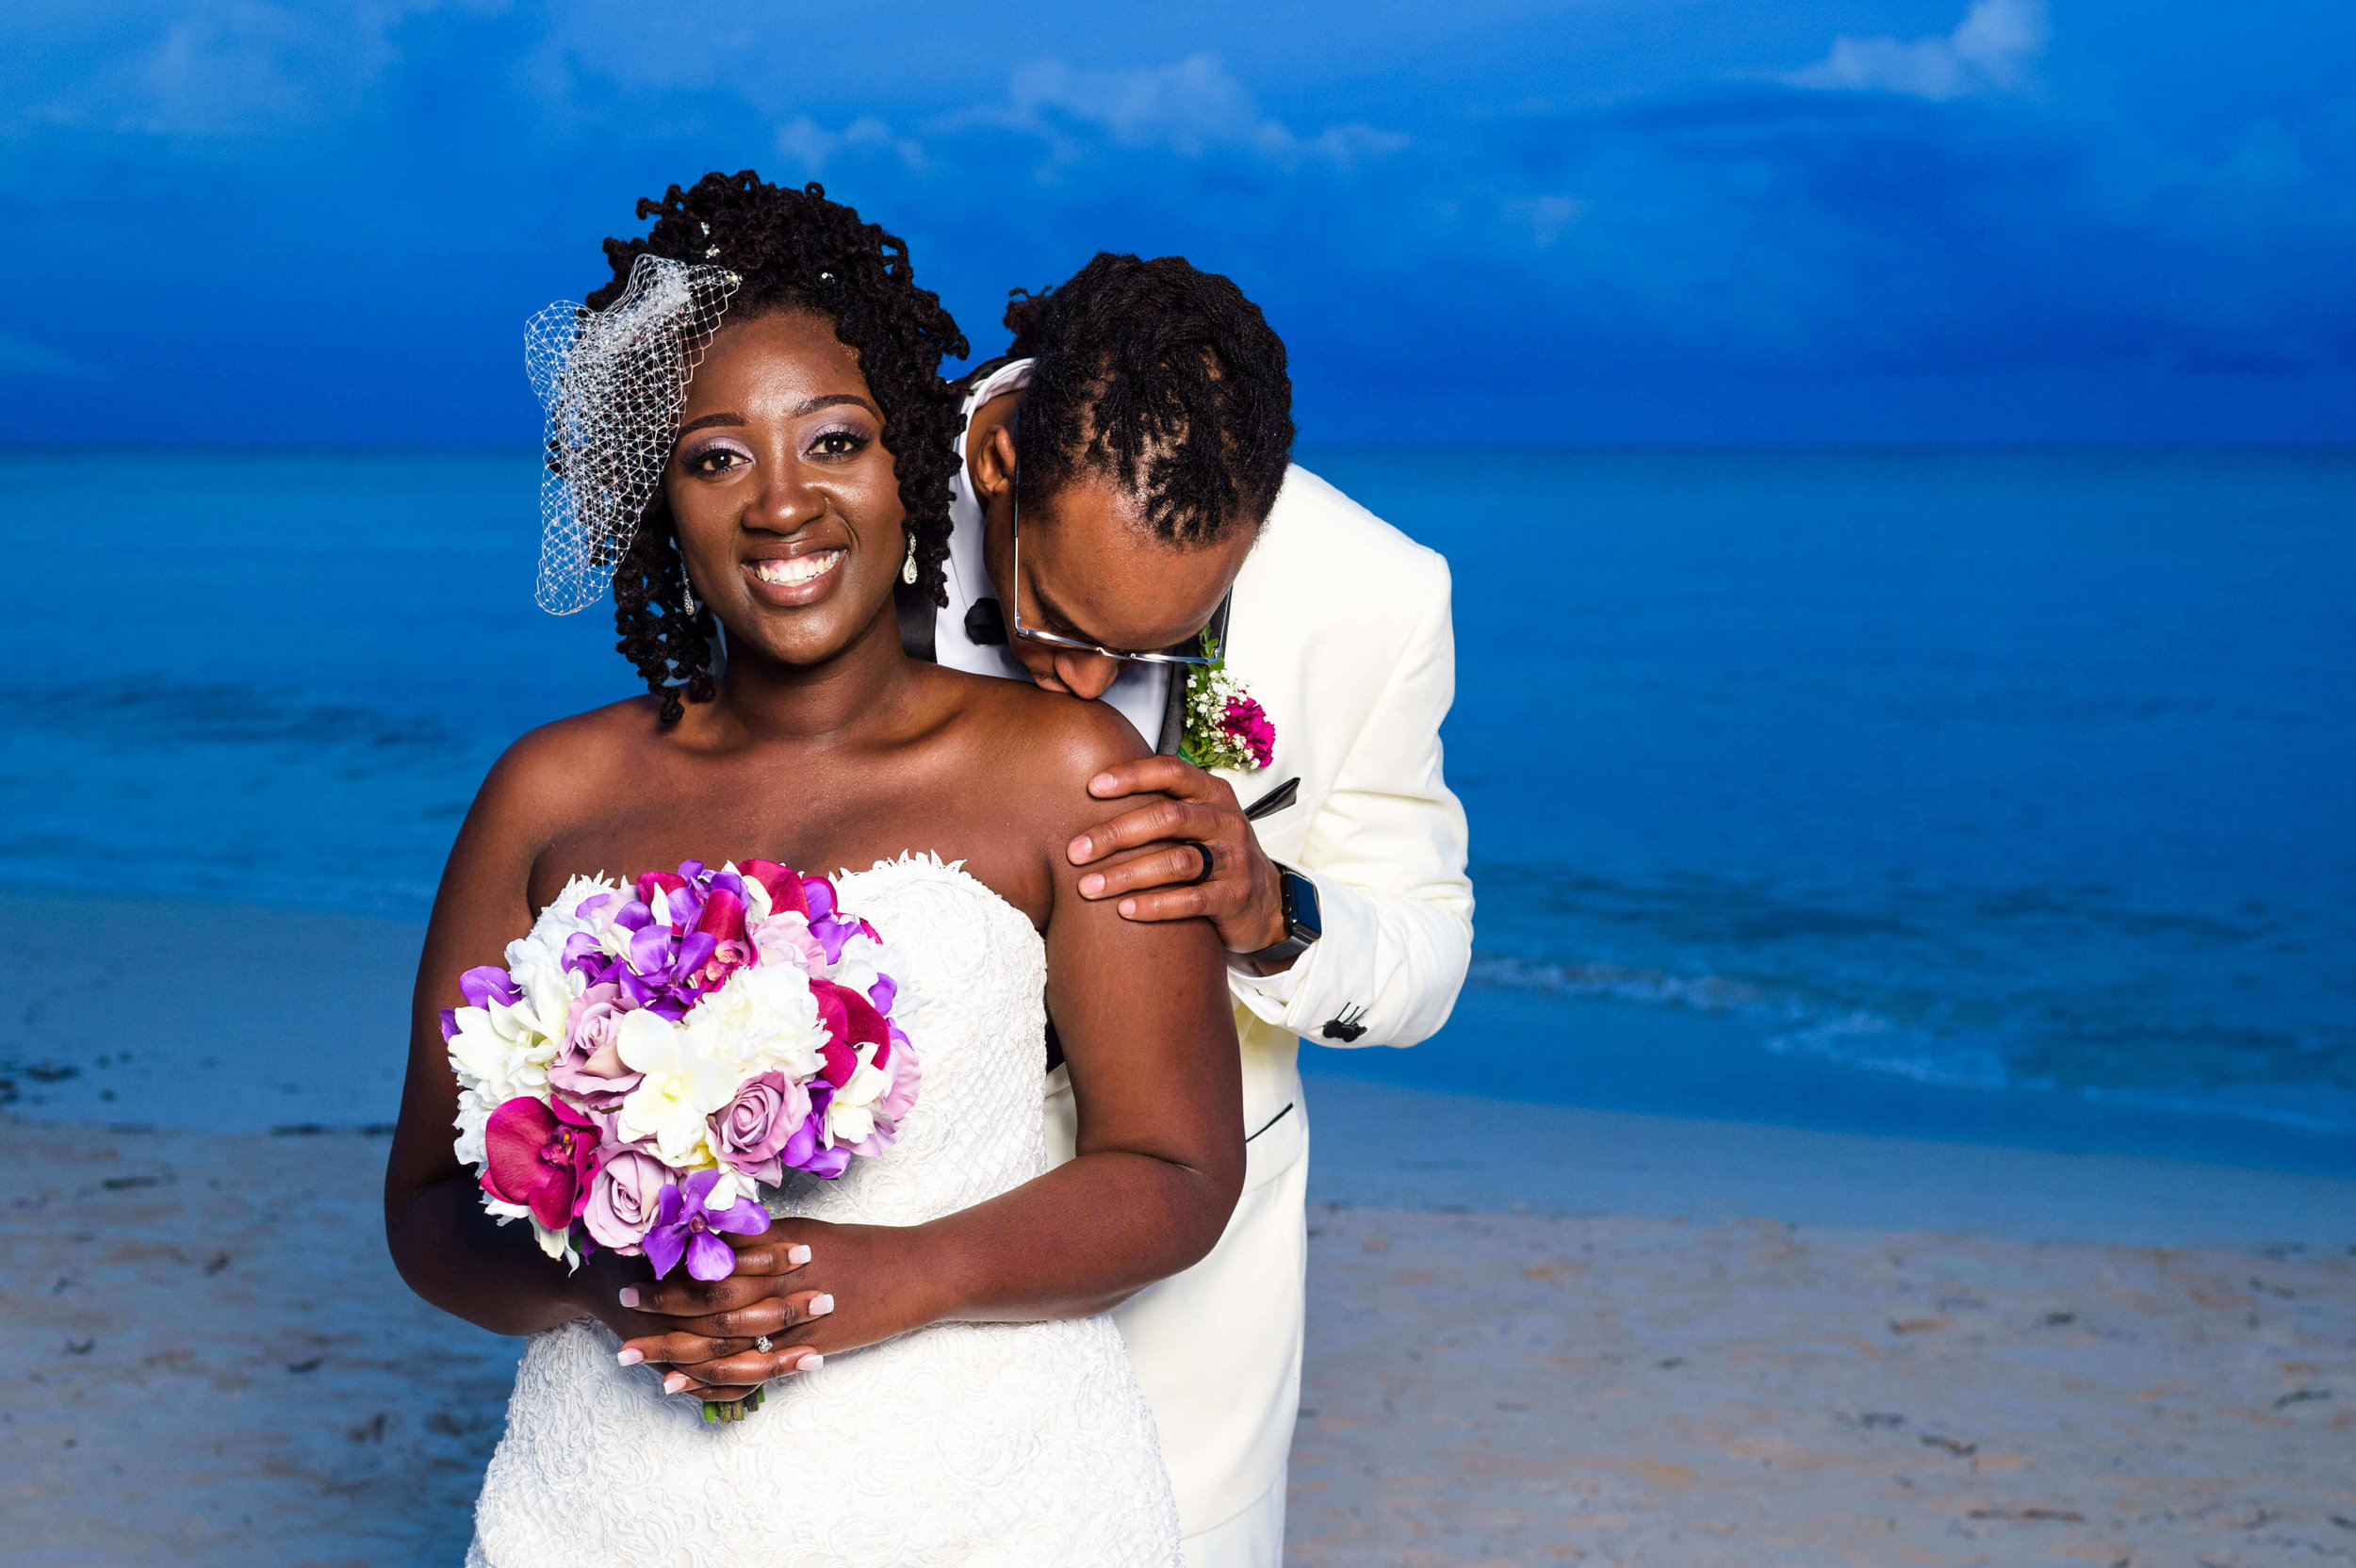 jamellah-how-to-plan-a-destination-wedding-in-montego-bay-jamaica-royalton-blue-waters-black-destination-bride-destiland-desti-guide-to-destination-weddings-couple-beach-after-ceremony.jpg